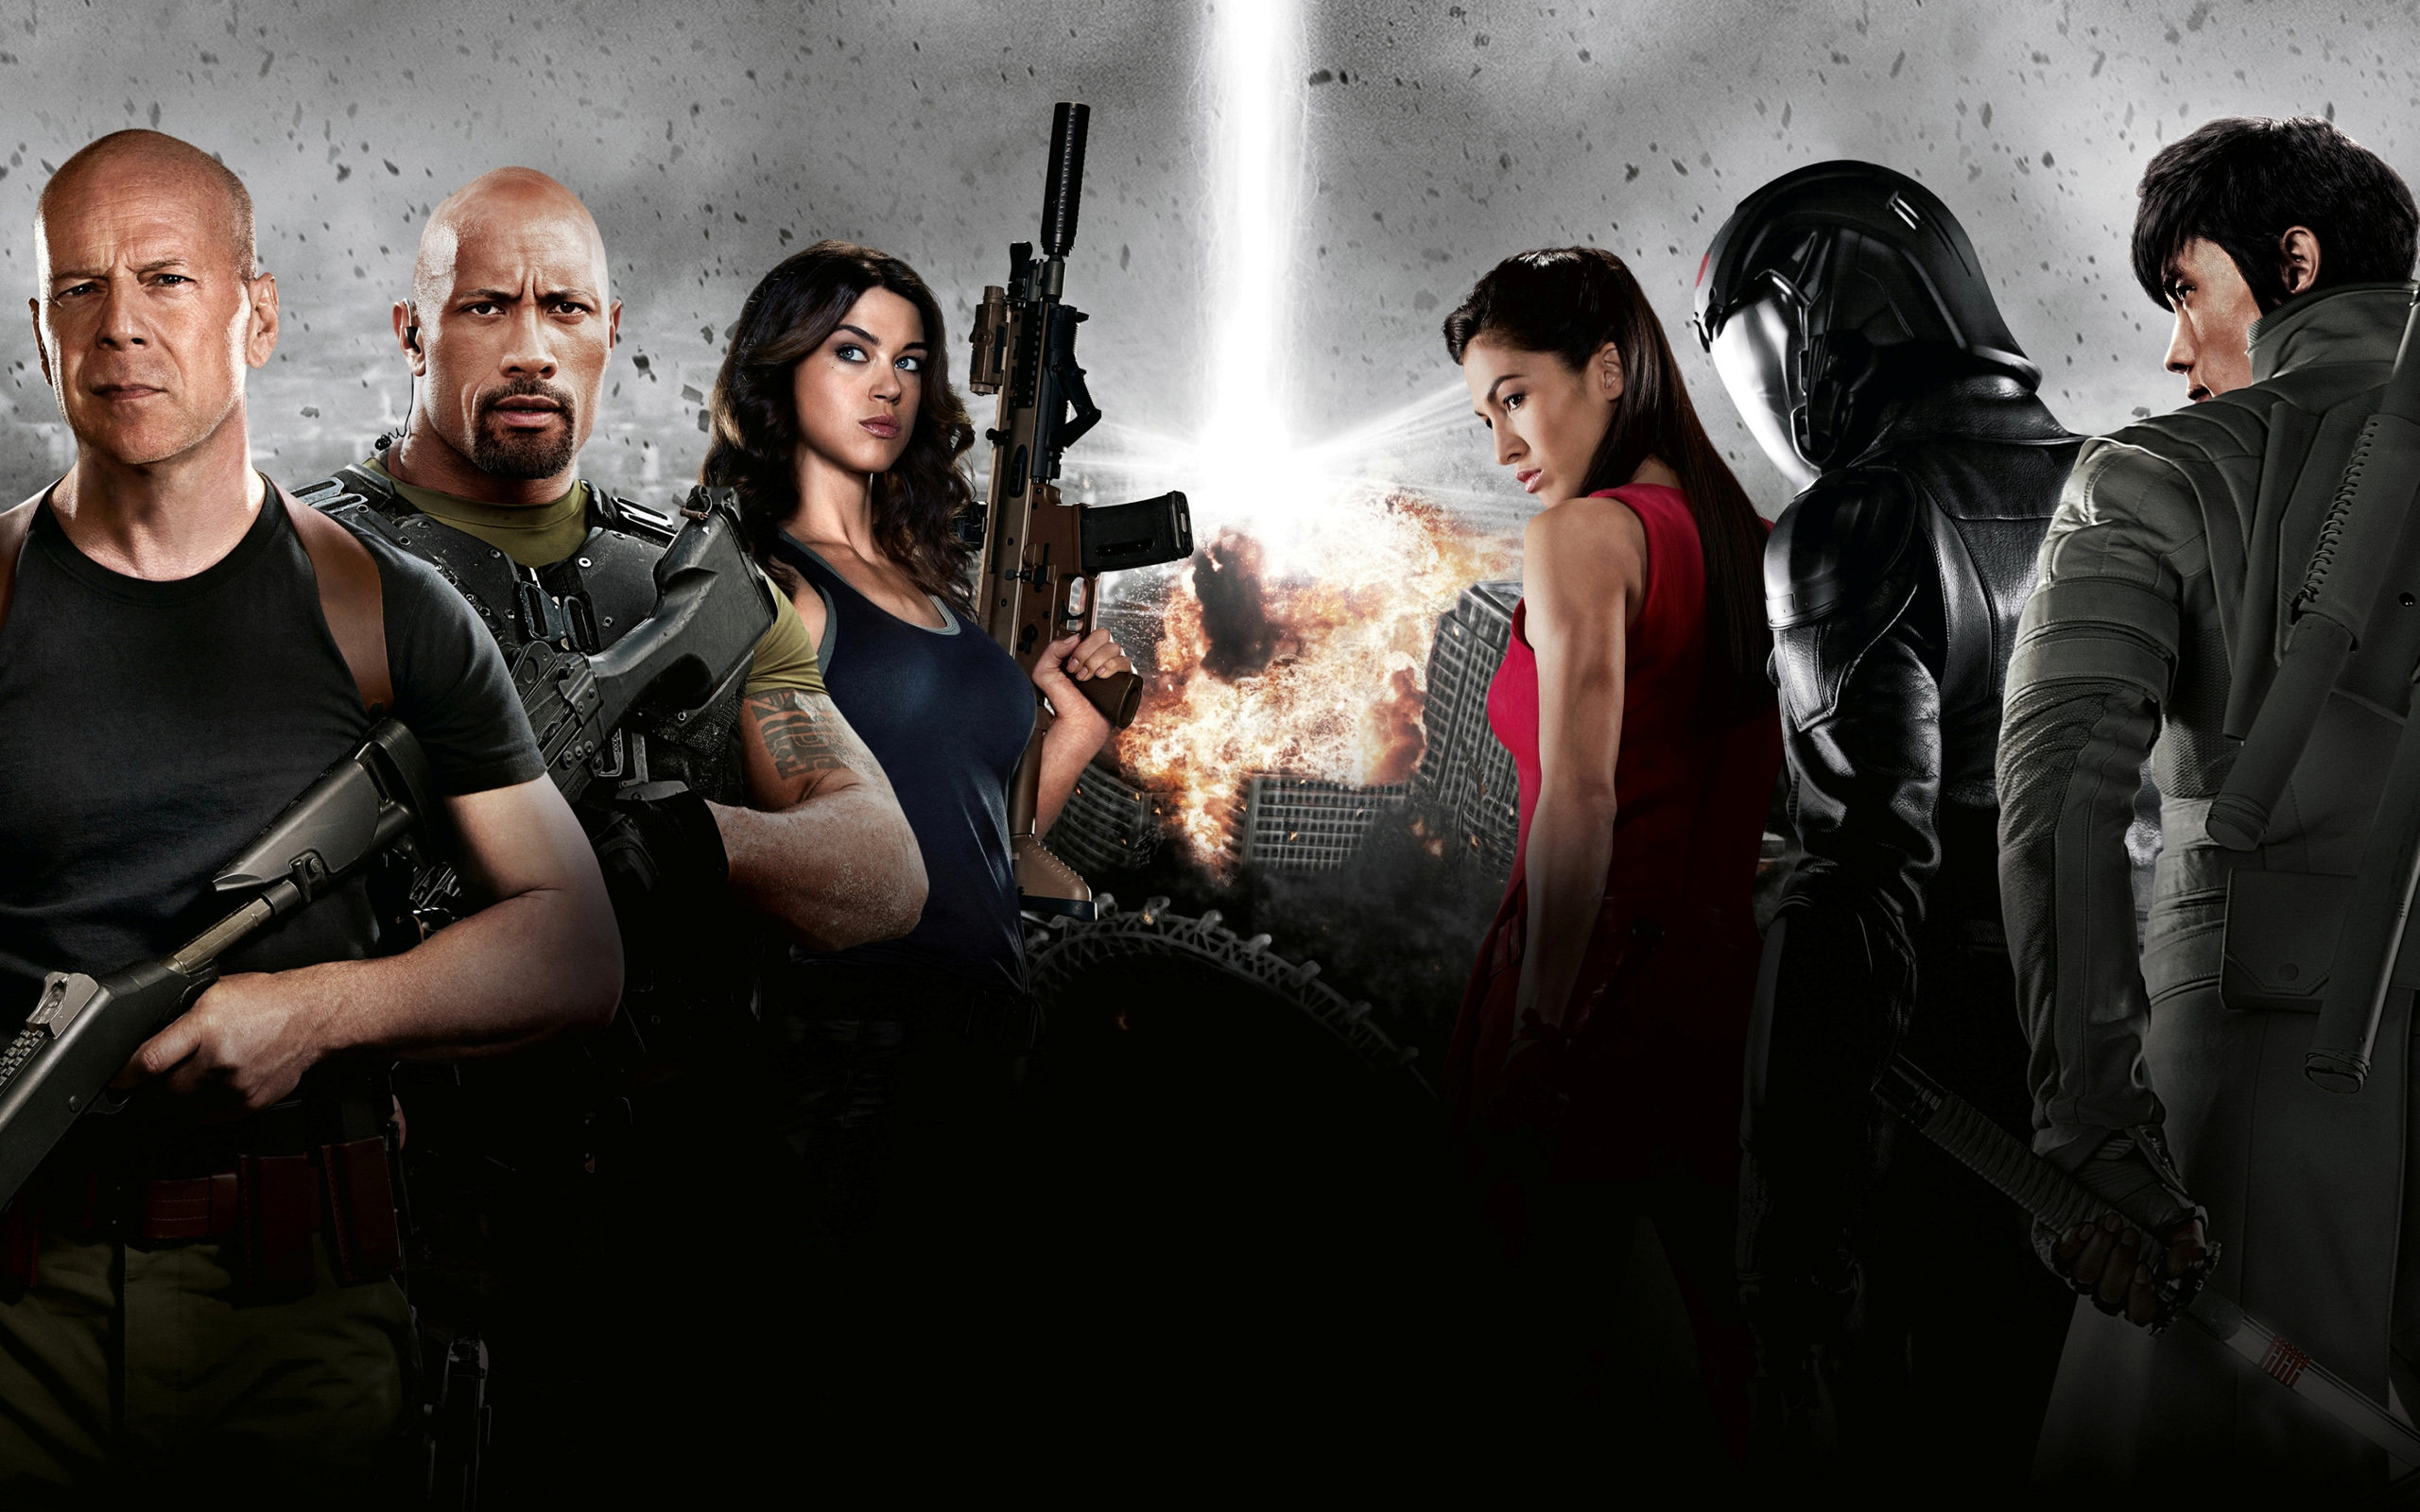 2013 G.I. Joe Retaliation 567.87 Kb